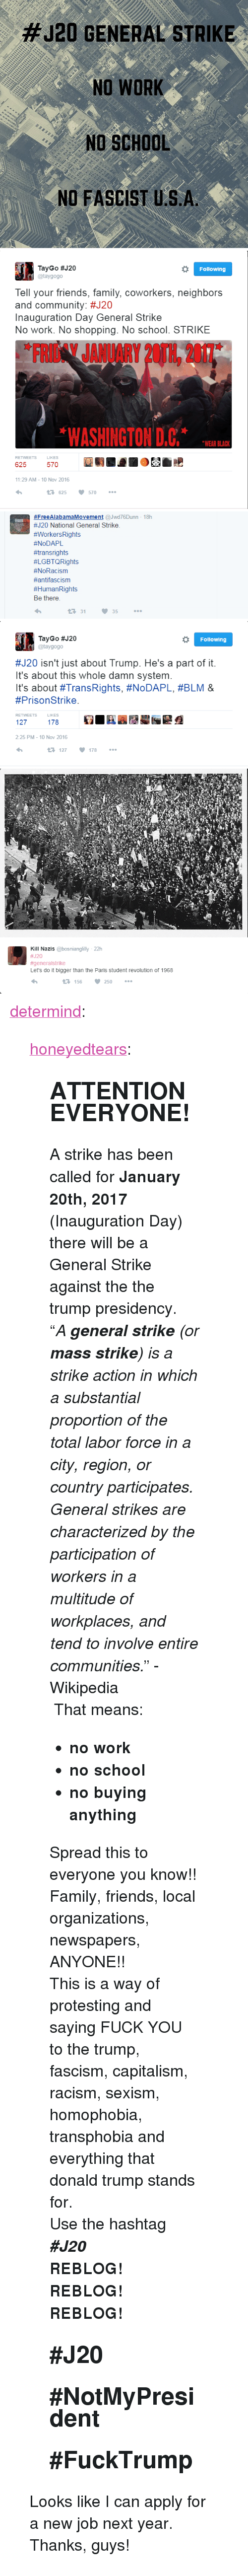 "Community, Donald Trump, and Family:  #J20 GENERAL STRIKE  NO WORK  NO SCHOOL  NO FASCIST U.S.A   TayGo #J20  @taygogo  Following  Tell your friends, family, coworkers, neighbors  and community: #J20  Inauguration Day General Strike  No work. No shopping. No school. STRIKE  FRID JANUARY 20TH, 2017  *WASHINGTON D.C1. L.R  WEAR BLACK  LIKES  625 570  11:29 AM-10 Nov 2016  625  570   #FreeAlabamaMovement @Jwd76Dunn. 18h  #120 National General Strike.  #Workers Rights  #NoDAPL  #trans rights  #LGBTQRights  #NoRacism  #antifascism  #HumanRights  Be there.  13 31   TayGo #J20  @taygogo  Following  #120 isn't just about Trump. He's a part of it.  It's about this whole damn system  It's about #TransRights, #NoDAPL, #BLM &  #PrisonStrike  RETWEETS  LIKES  127  178  2:25 PM - 10 Nov 2016  127  178   Kill Nazis @bosnianglilly 22h  #J20  #generalstrike  Let's do it bigger than the Paris student revolution of 1968  250 <p><a href=""http://determind.tumblr.com/post/153094256155/honeyedtears-attention-everyone-a-strike-has"" class=""tumblr_blog"">determind</a>:</p>  <blockquote><p><a class=""tumblr_blog"" href=""http://honeyedtears.tumblr.com/post/153058611436"">honeyedtears</a>:</p> <blockquote> <h2><b>ATTENTION EVERYONE!</b></h2> <p>A strike has been called for <b>January 20th, 2017</b> (Inauguration Day) there will be a General Strike against the the trump presidency.</p> <p>  ""<i>A <b>general strike</b> (or <b>mass strike</b>) is a strike action in which a substantial proportion of the total labor force in a city, region, or country participates. General strikes are characterized by the participation of workers in a multitude of workplaces, and tend to involve entire communities.</i>"" -Wikipedia<br/></p> <p> That means:</p> <ul><li><b>no work<br/></b></li> <li><b>no school</b></li> <li><b>no buying anything</b></li> </ul><p>Spread this to everyone you know!!</p> <p>Family, friends, local organizations, newspapers, ANYONE!!</p> <p>This is a way of protesting and saying FUCK YOU to the trump, fascism, capitalism, racism, sexism, homophobia, transphobia and everything that donald trump stands for.</p> <p>Use the hashtag <i><b>#J20</b></i></p> <p><b>REBLOG! REBLOG! REBLOG!</b></p> <h2>#<b>J20</b> </h2> <h2>#<b>NotMyPresident</b> </h2> <h2>#<b>FuckTrump</b> </h2> </blockquote>  <p>Looks like I can apply for a new job next year. Thanks, guys!</p></blockquote>"